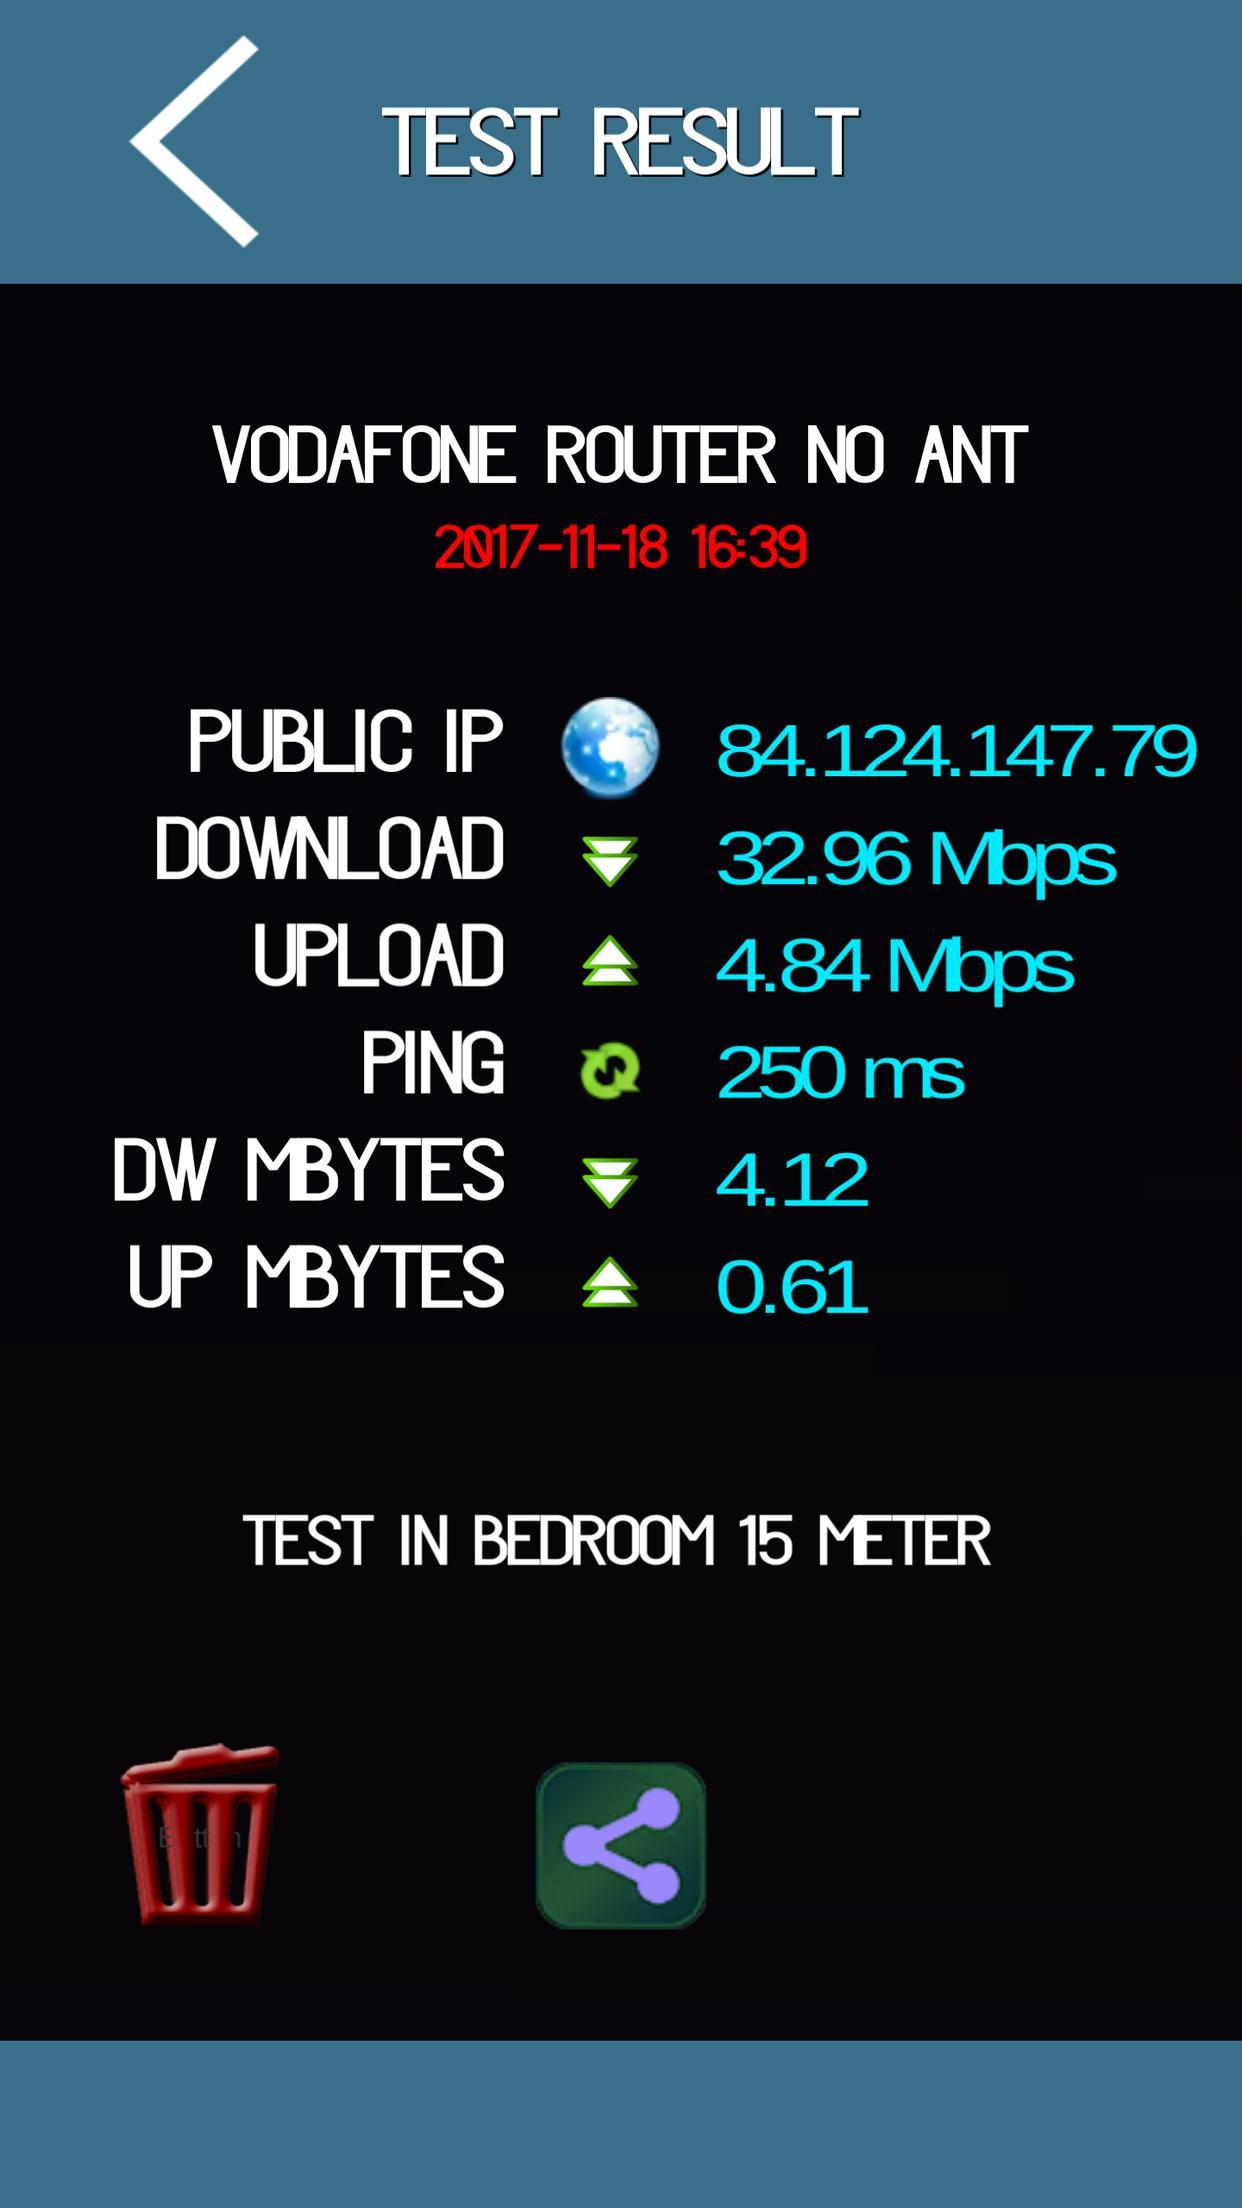 Internet wifi 3g 4g speed test IP and ping for Android - APK